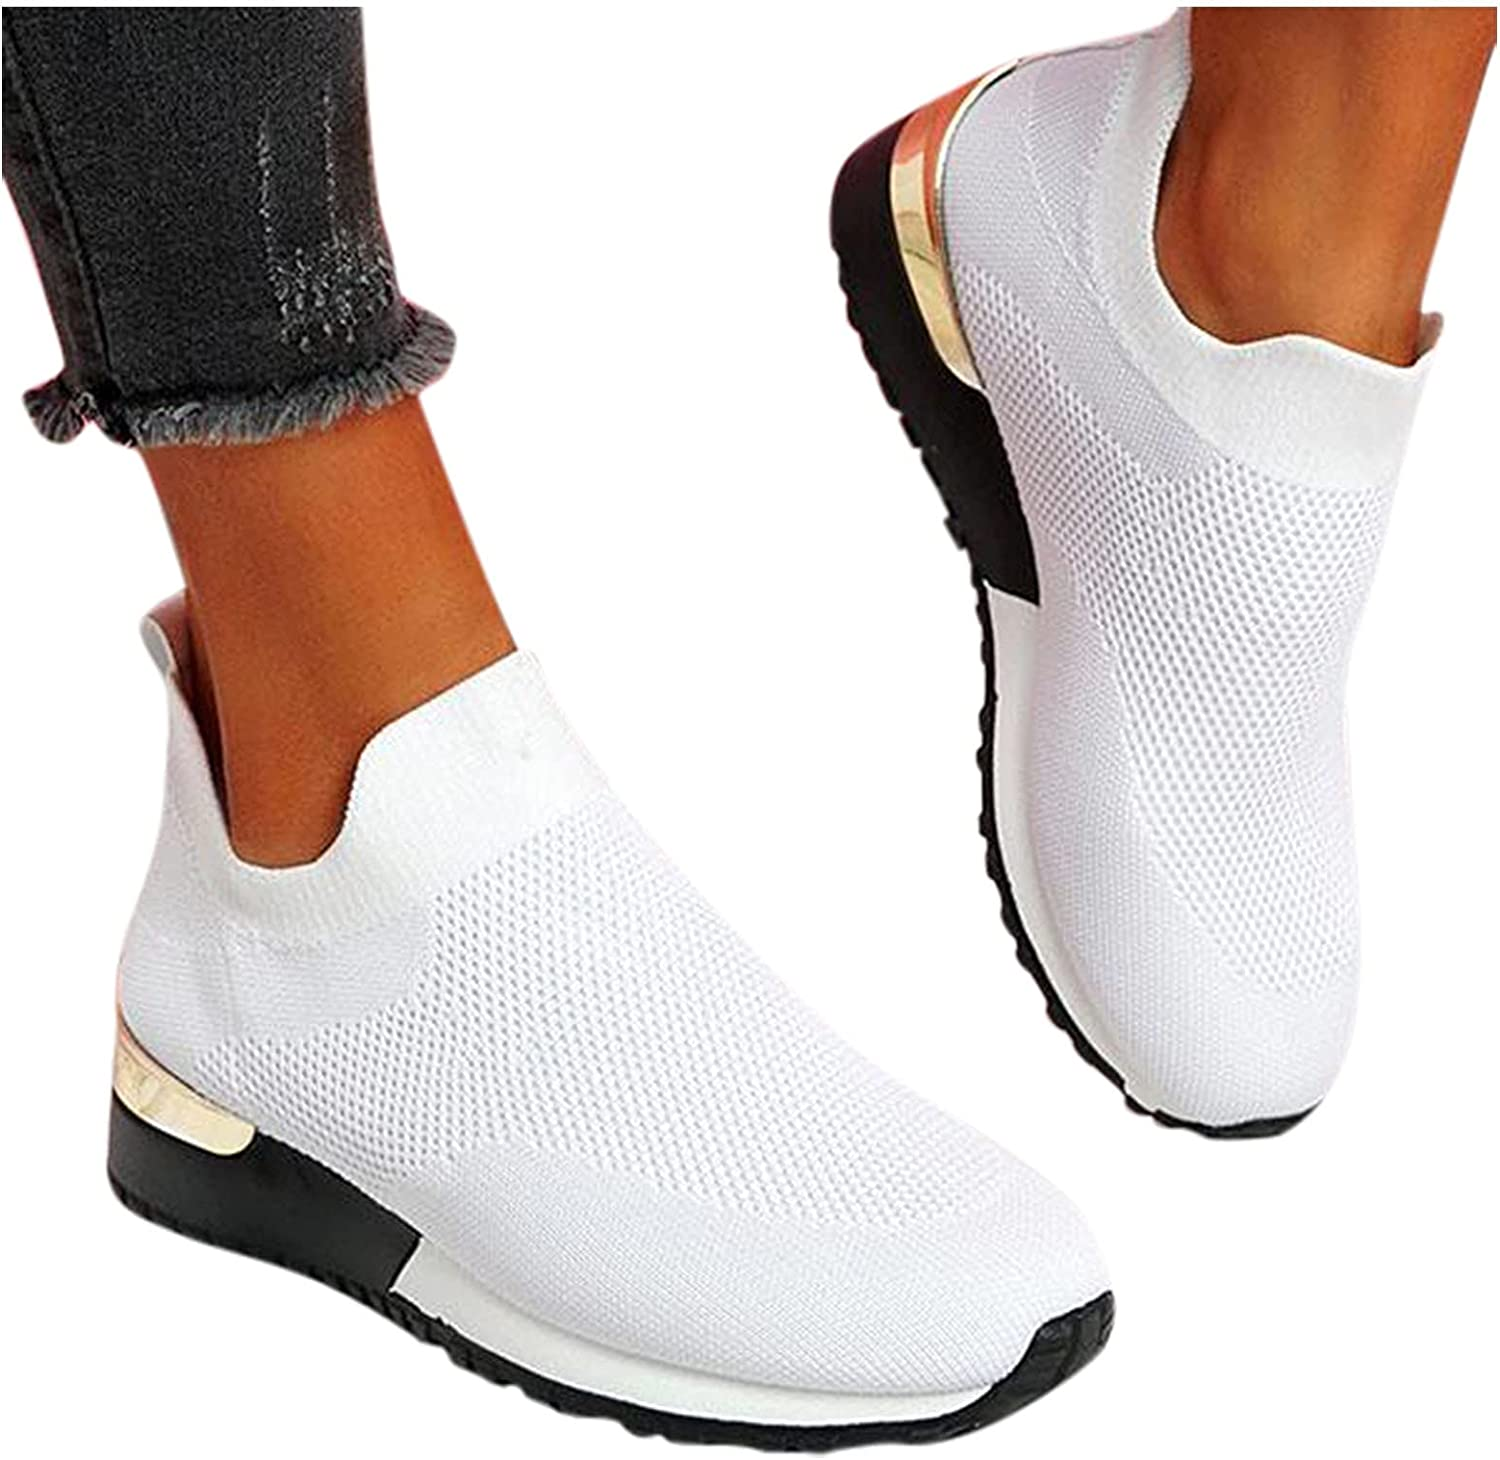 Women's Running Lightweight Breathable Casual Sports Shoes Fashion Sneakers Mesh Walking Shoes Slip On Loafers Outdoor